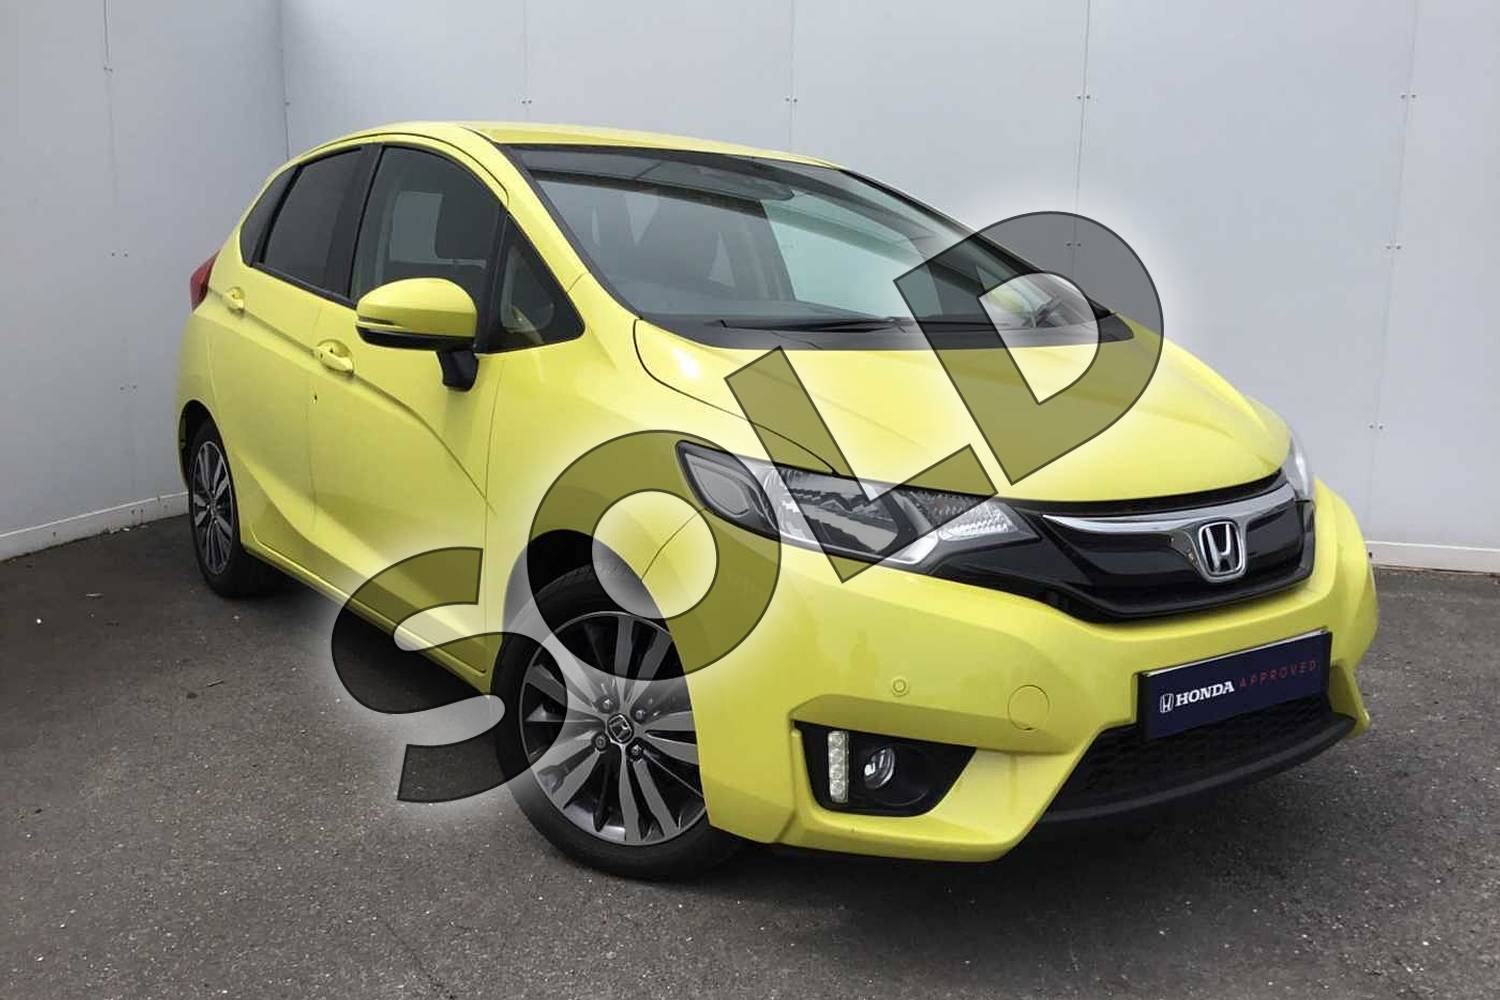 2017 Honda Jazz Hatchback 1.3 EX 5dr in Attract Yellow at Listers Honda Coventry